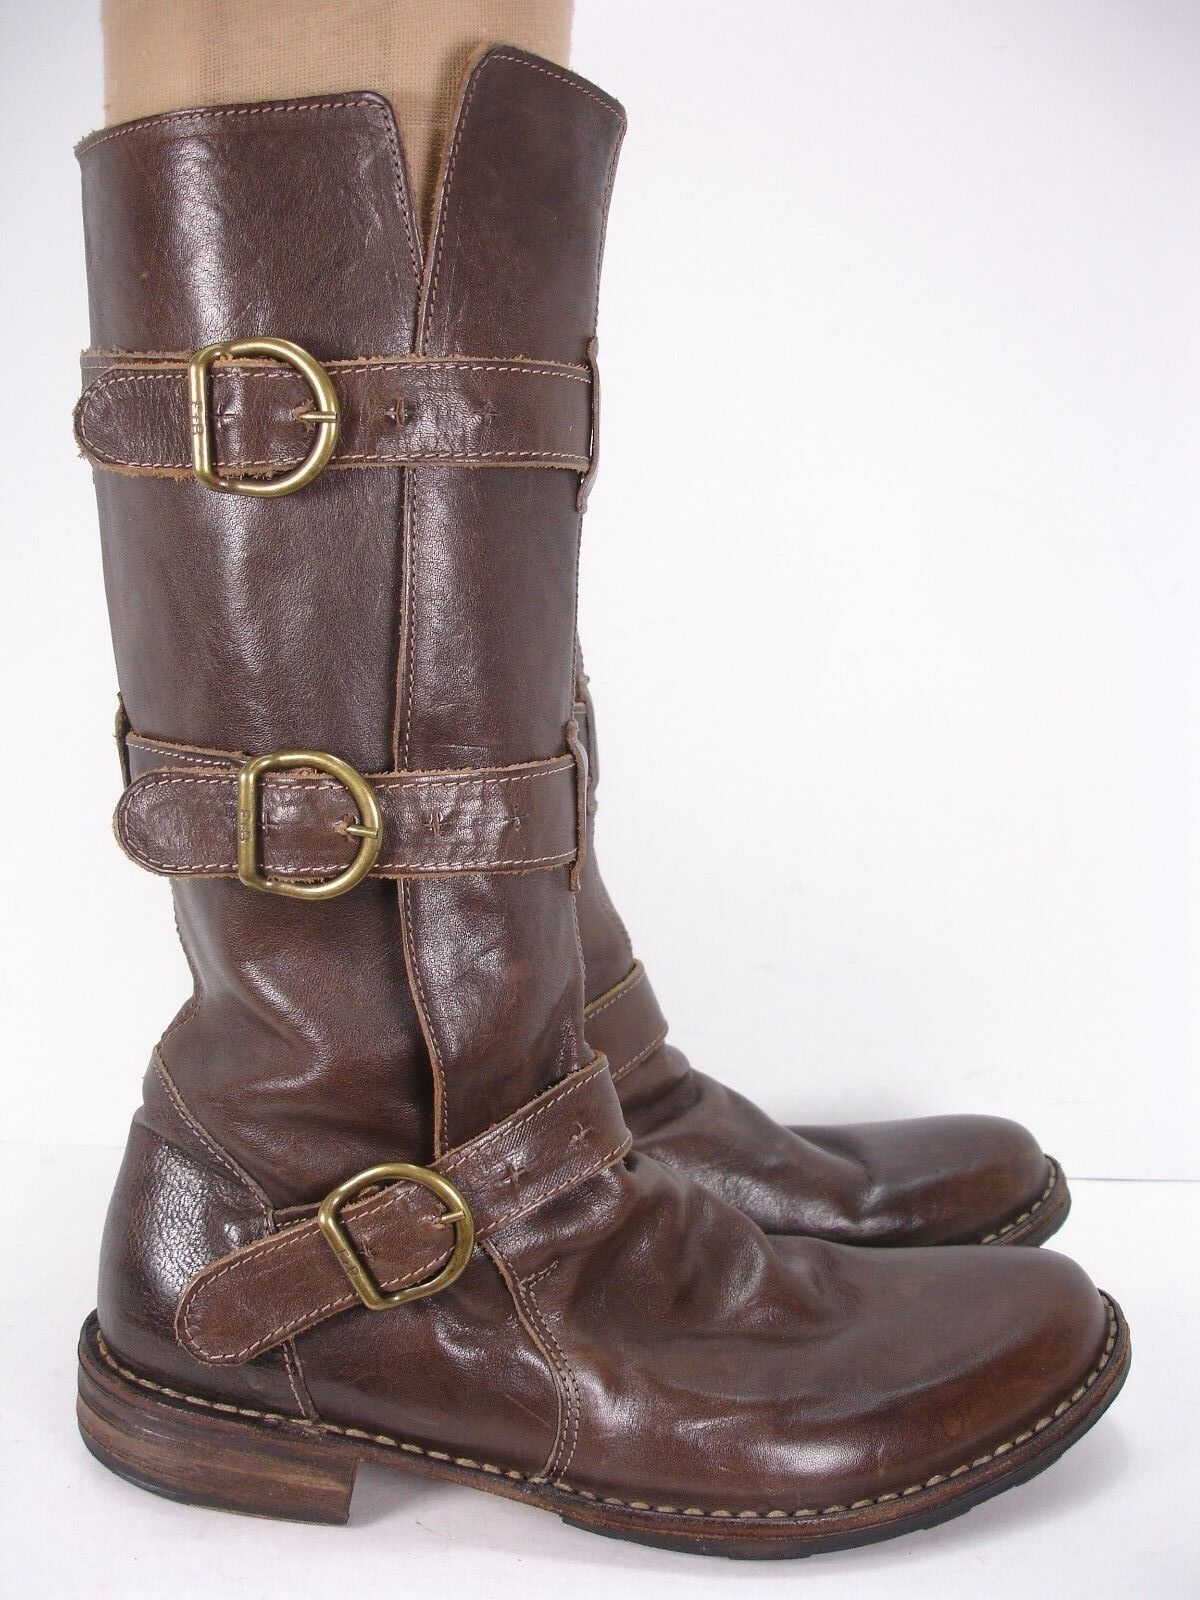 FIORENTINI+BAKER LEATHER 3 BUCKLE ETERNITY TESTA MOTORCYCLE MGold MOTORCYCLE TESTA Stiefel damen 40 4a5833